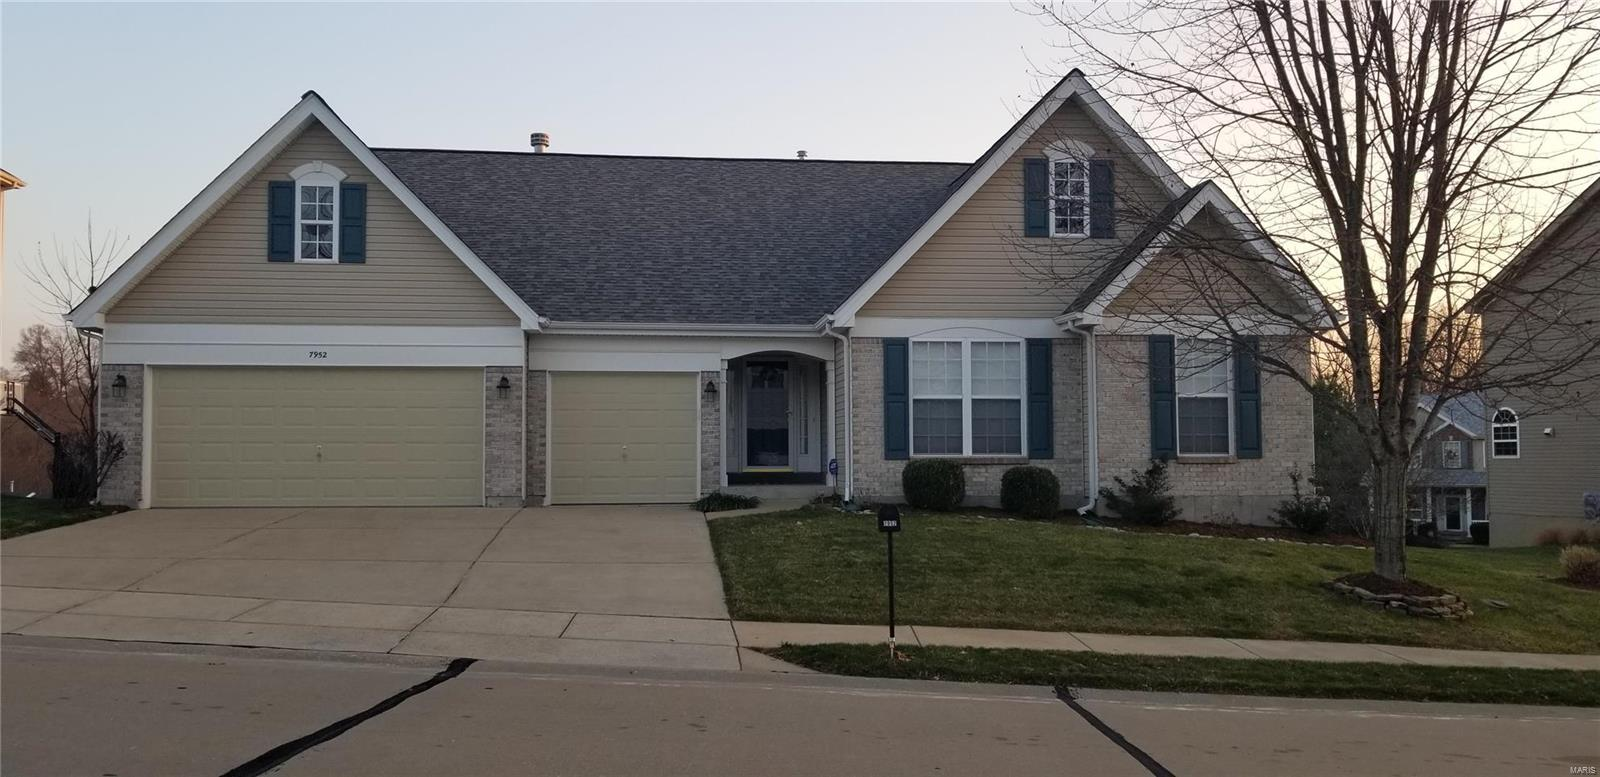 7952 Pinetop Property Photo - St Louis, MO real estate listing